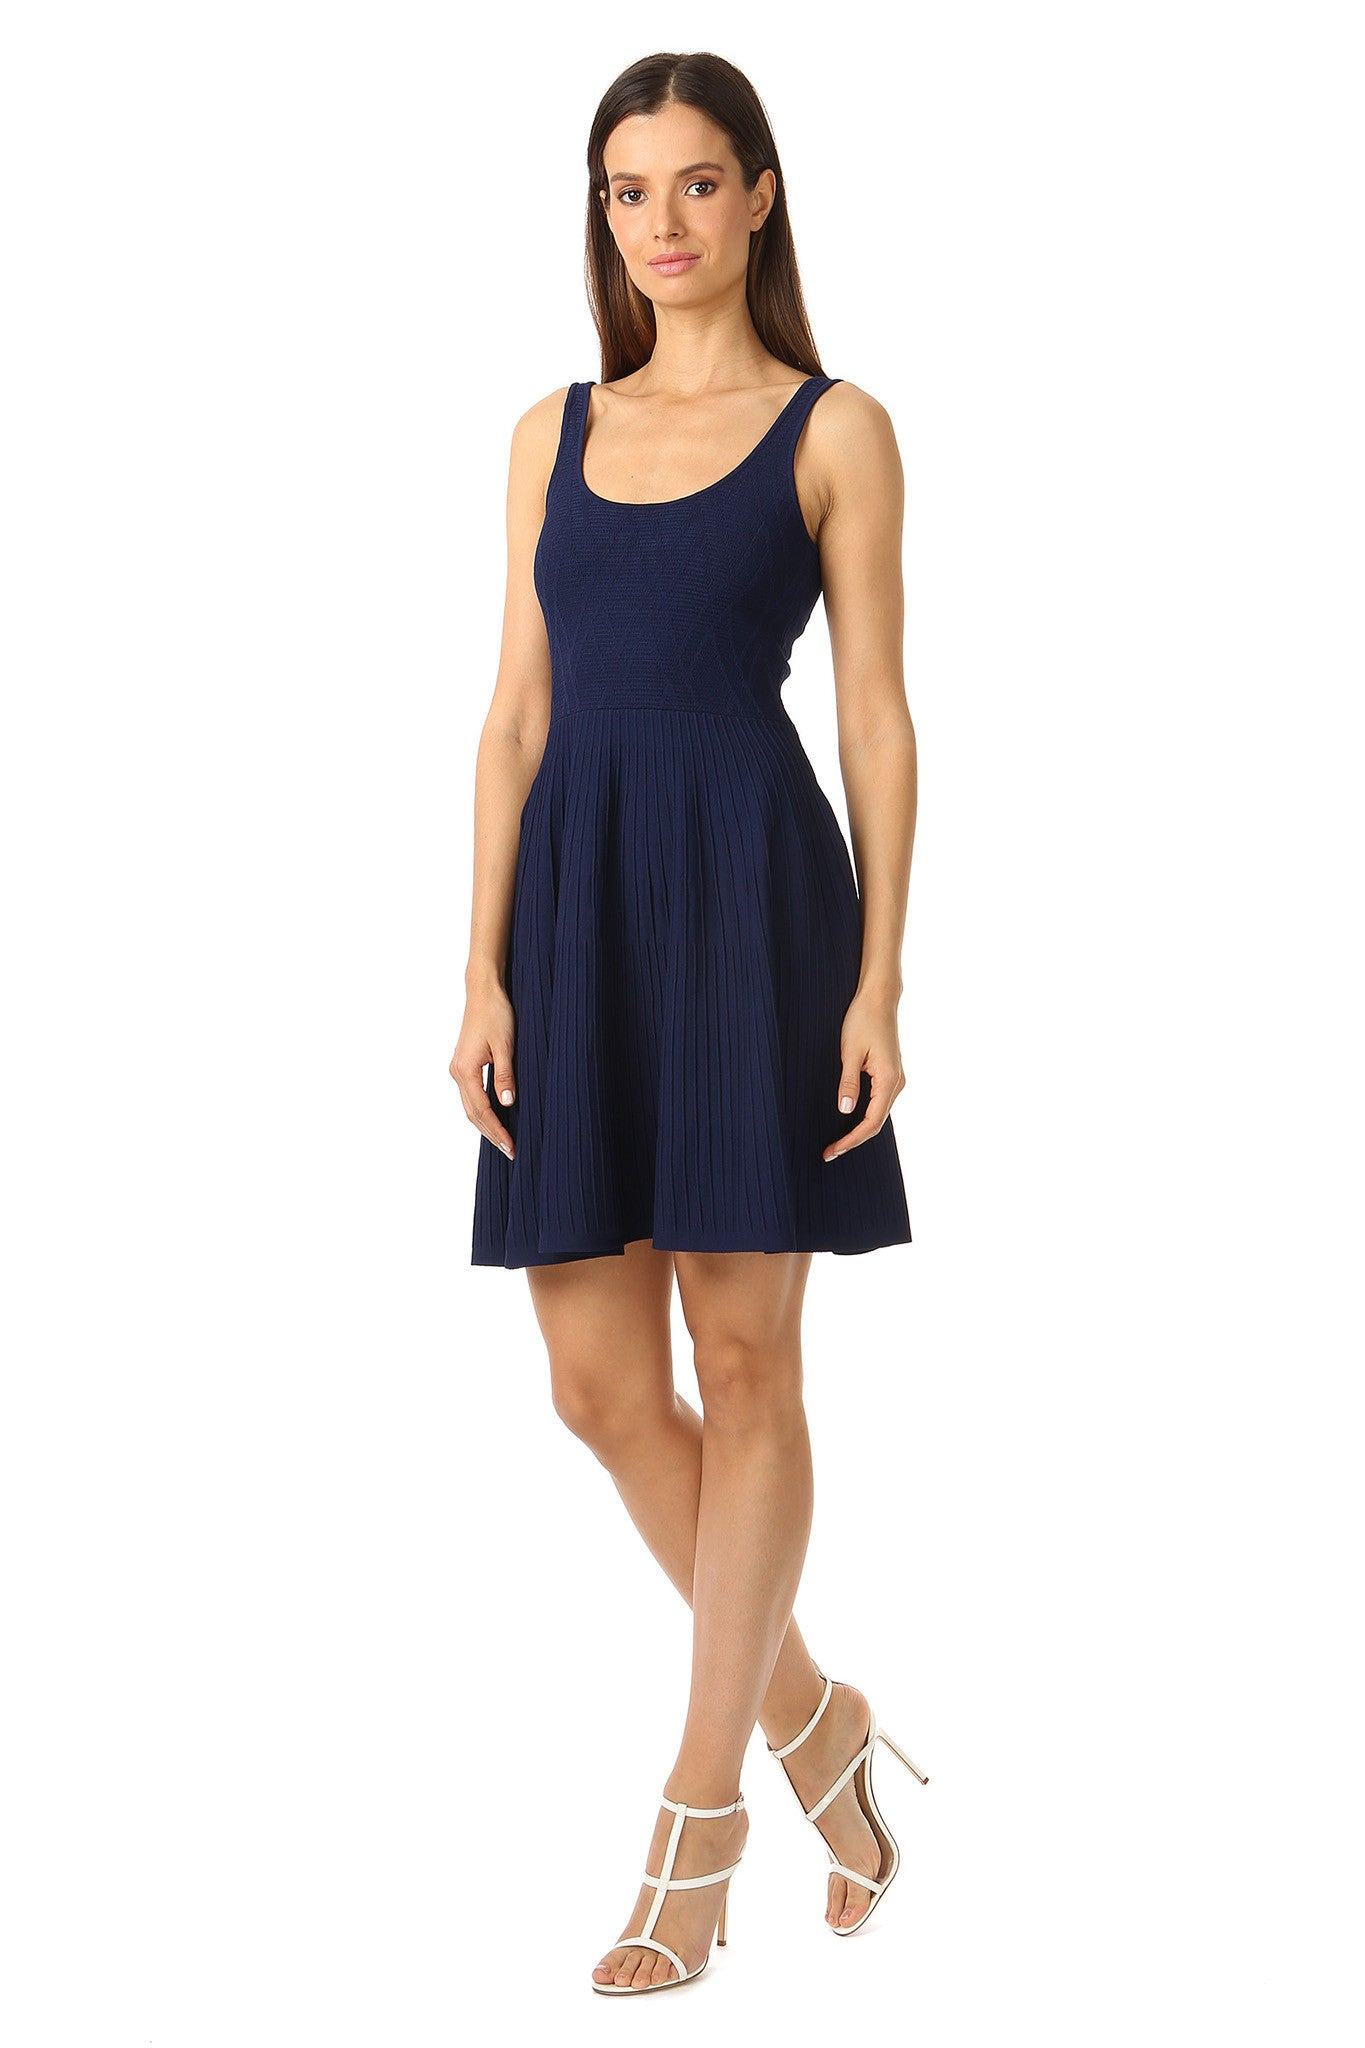 Jay Godfrey Knit Navy Fit and Flare Dress - Side View